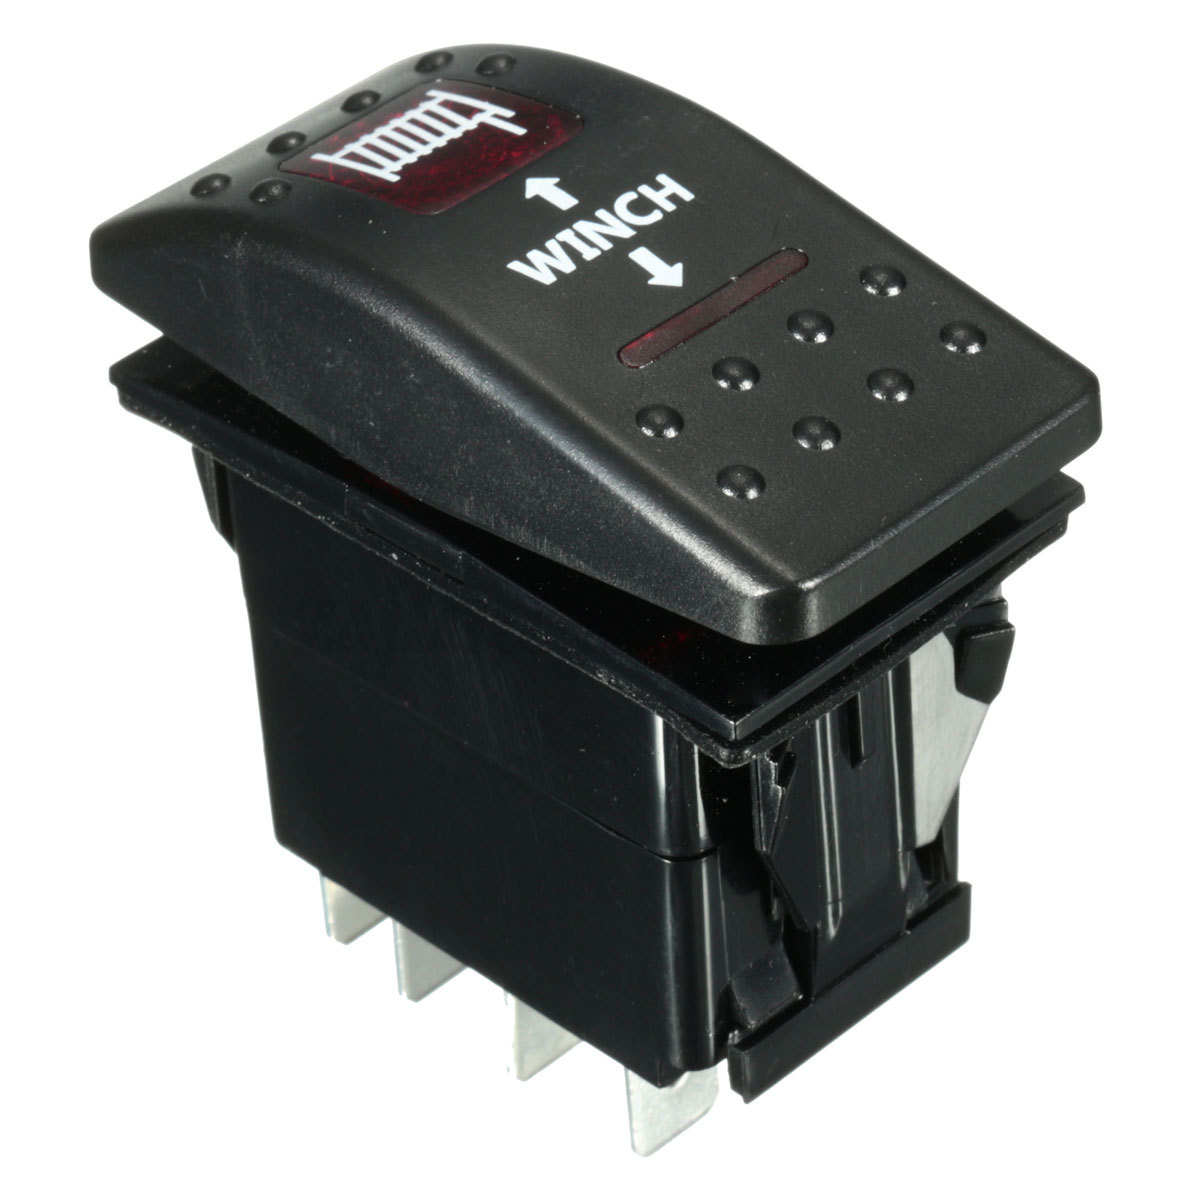 7Pin Laser    Momentary       Rocker       Switch    Winch In Winch Out    12V     ON OFF Red LED Light   eBay